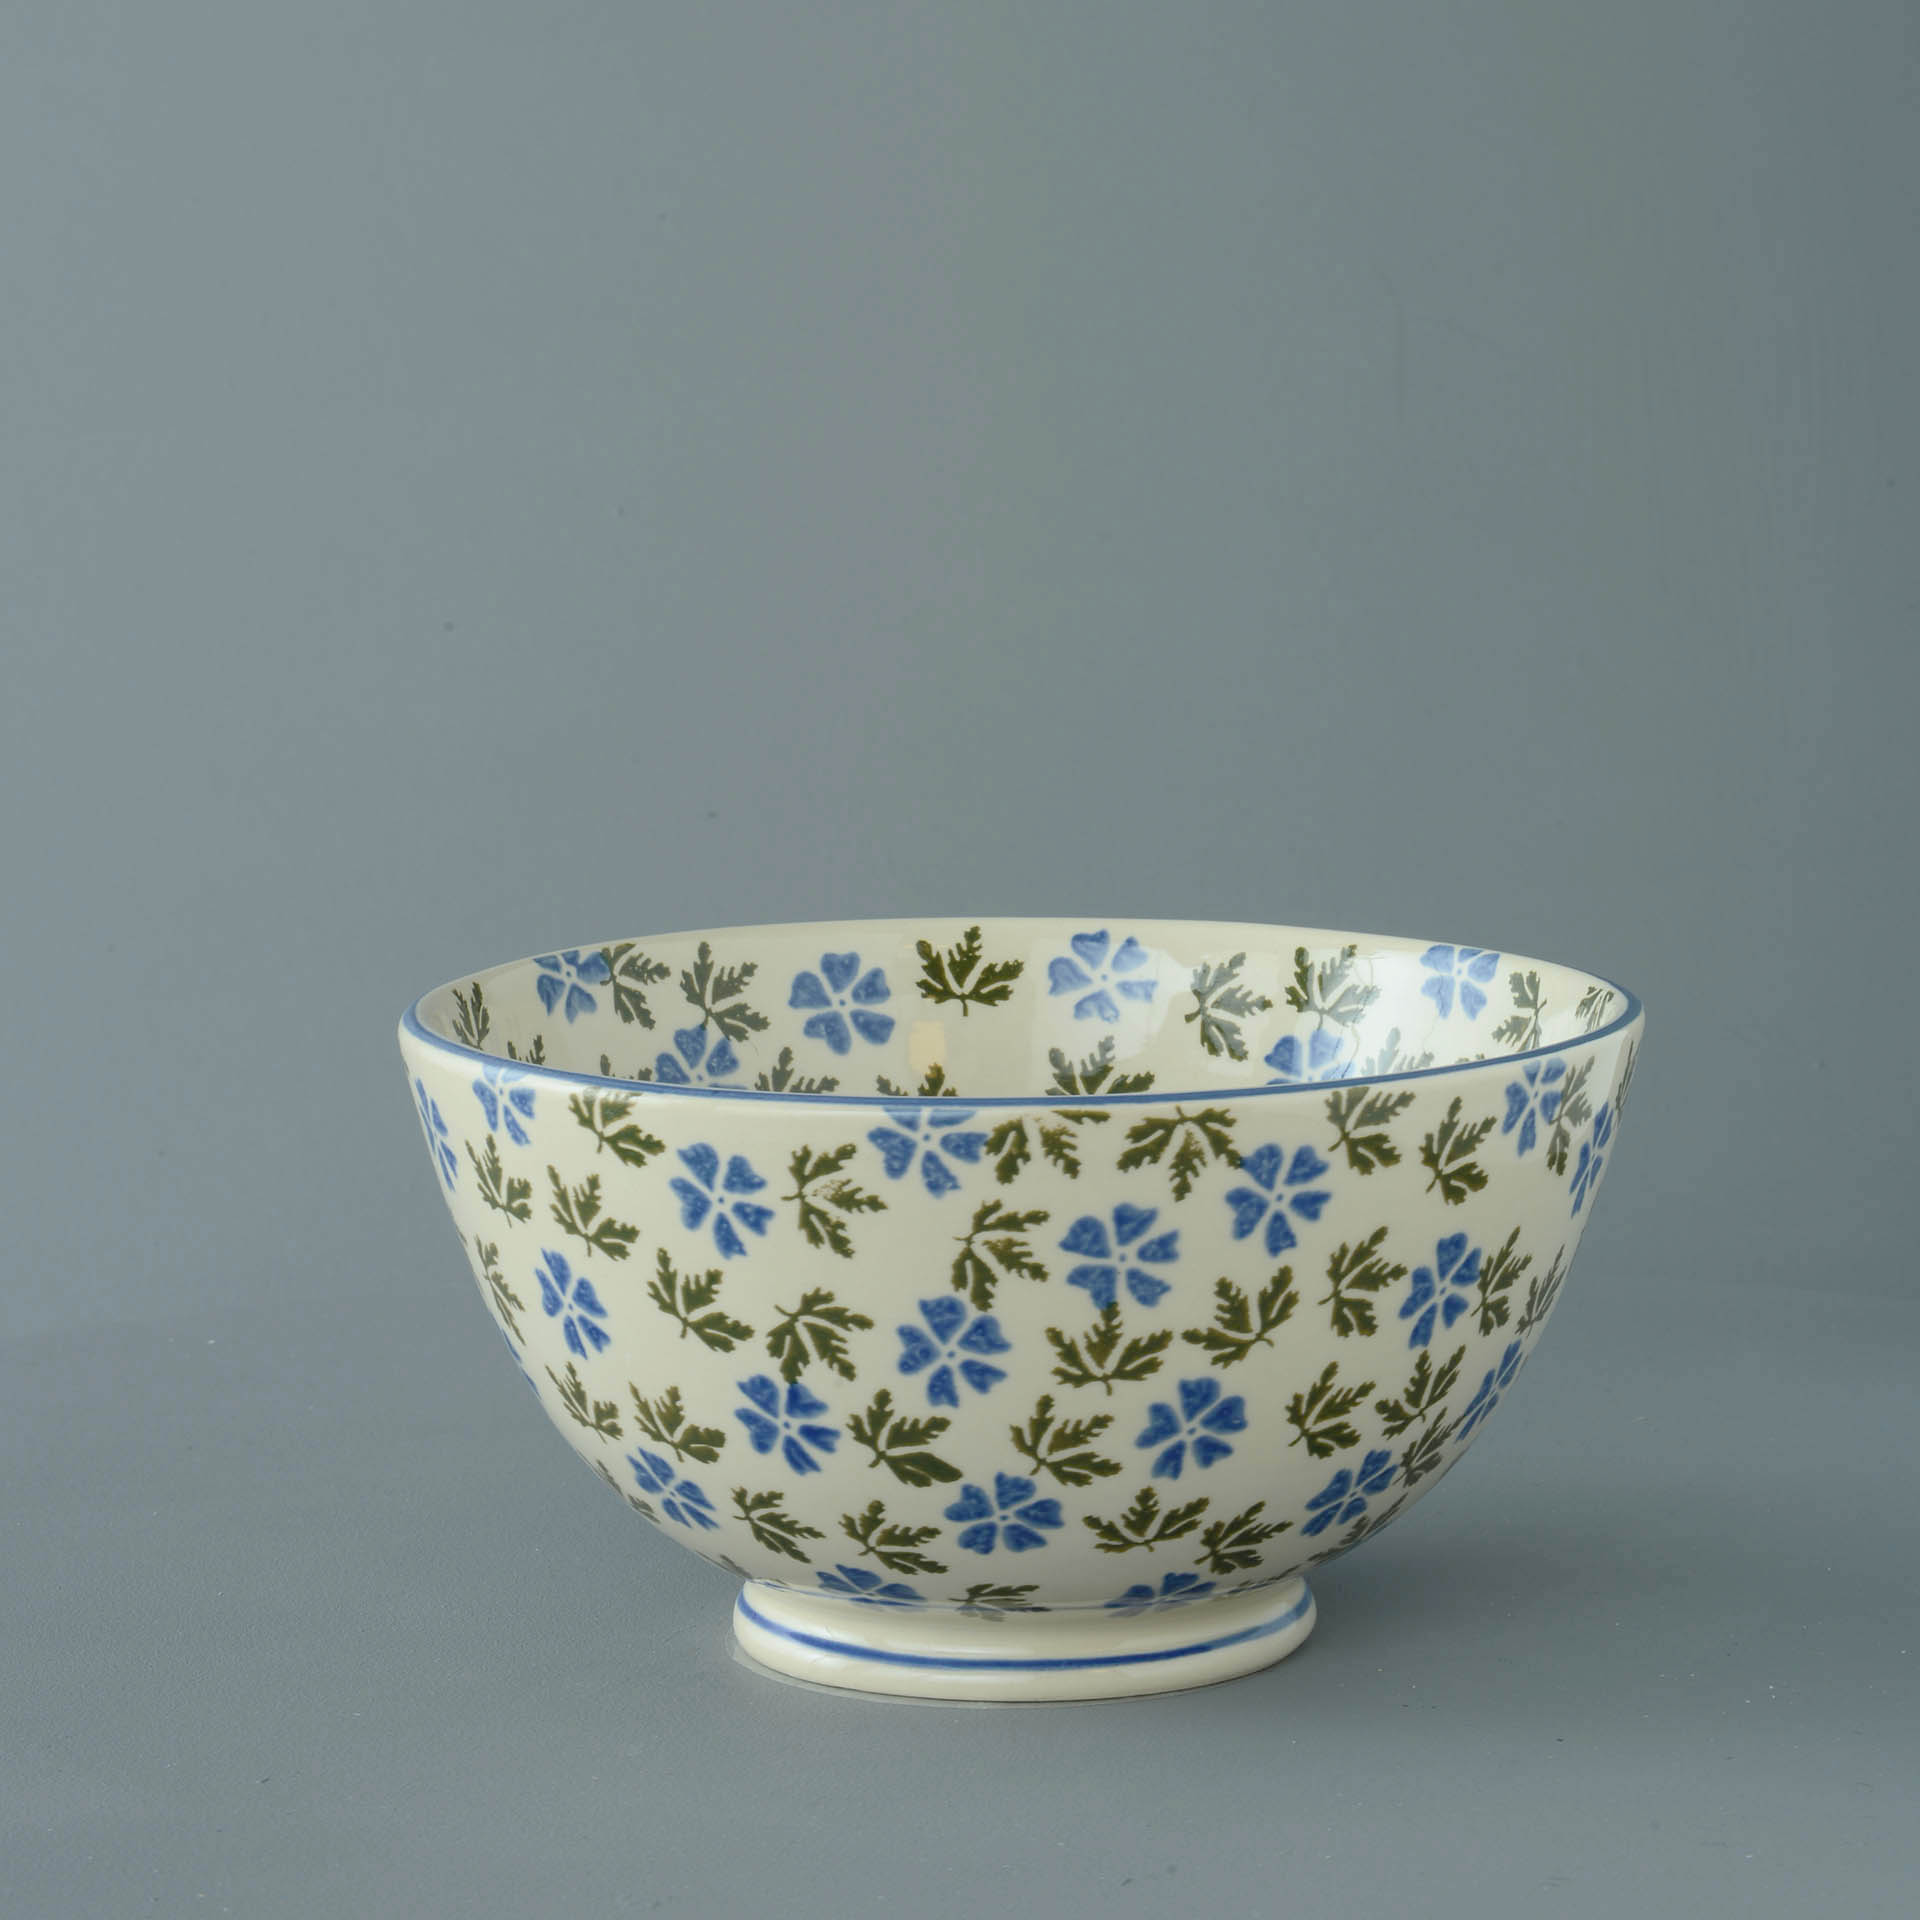 Geranium Serving Bowl 11 x 21.5cm